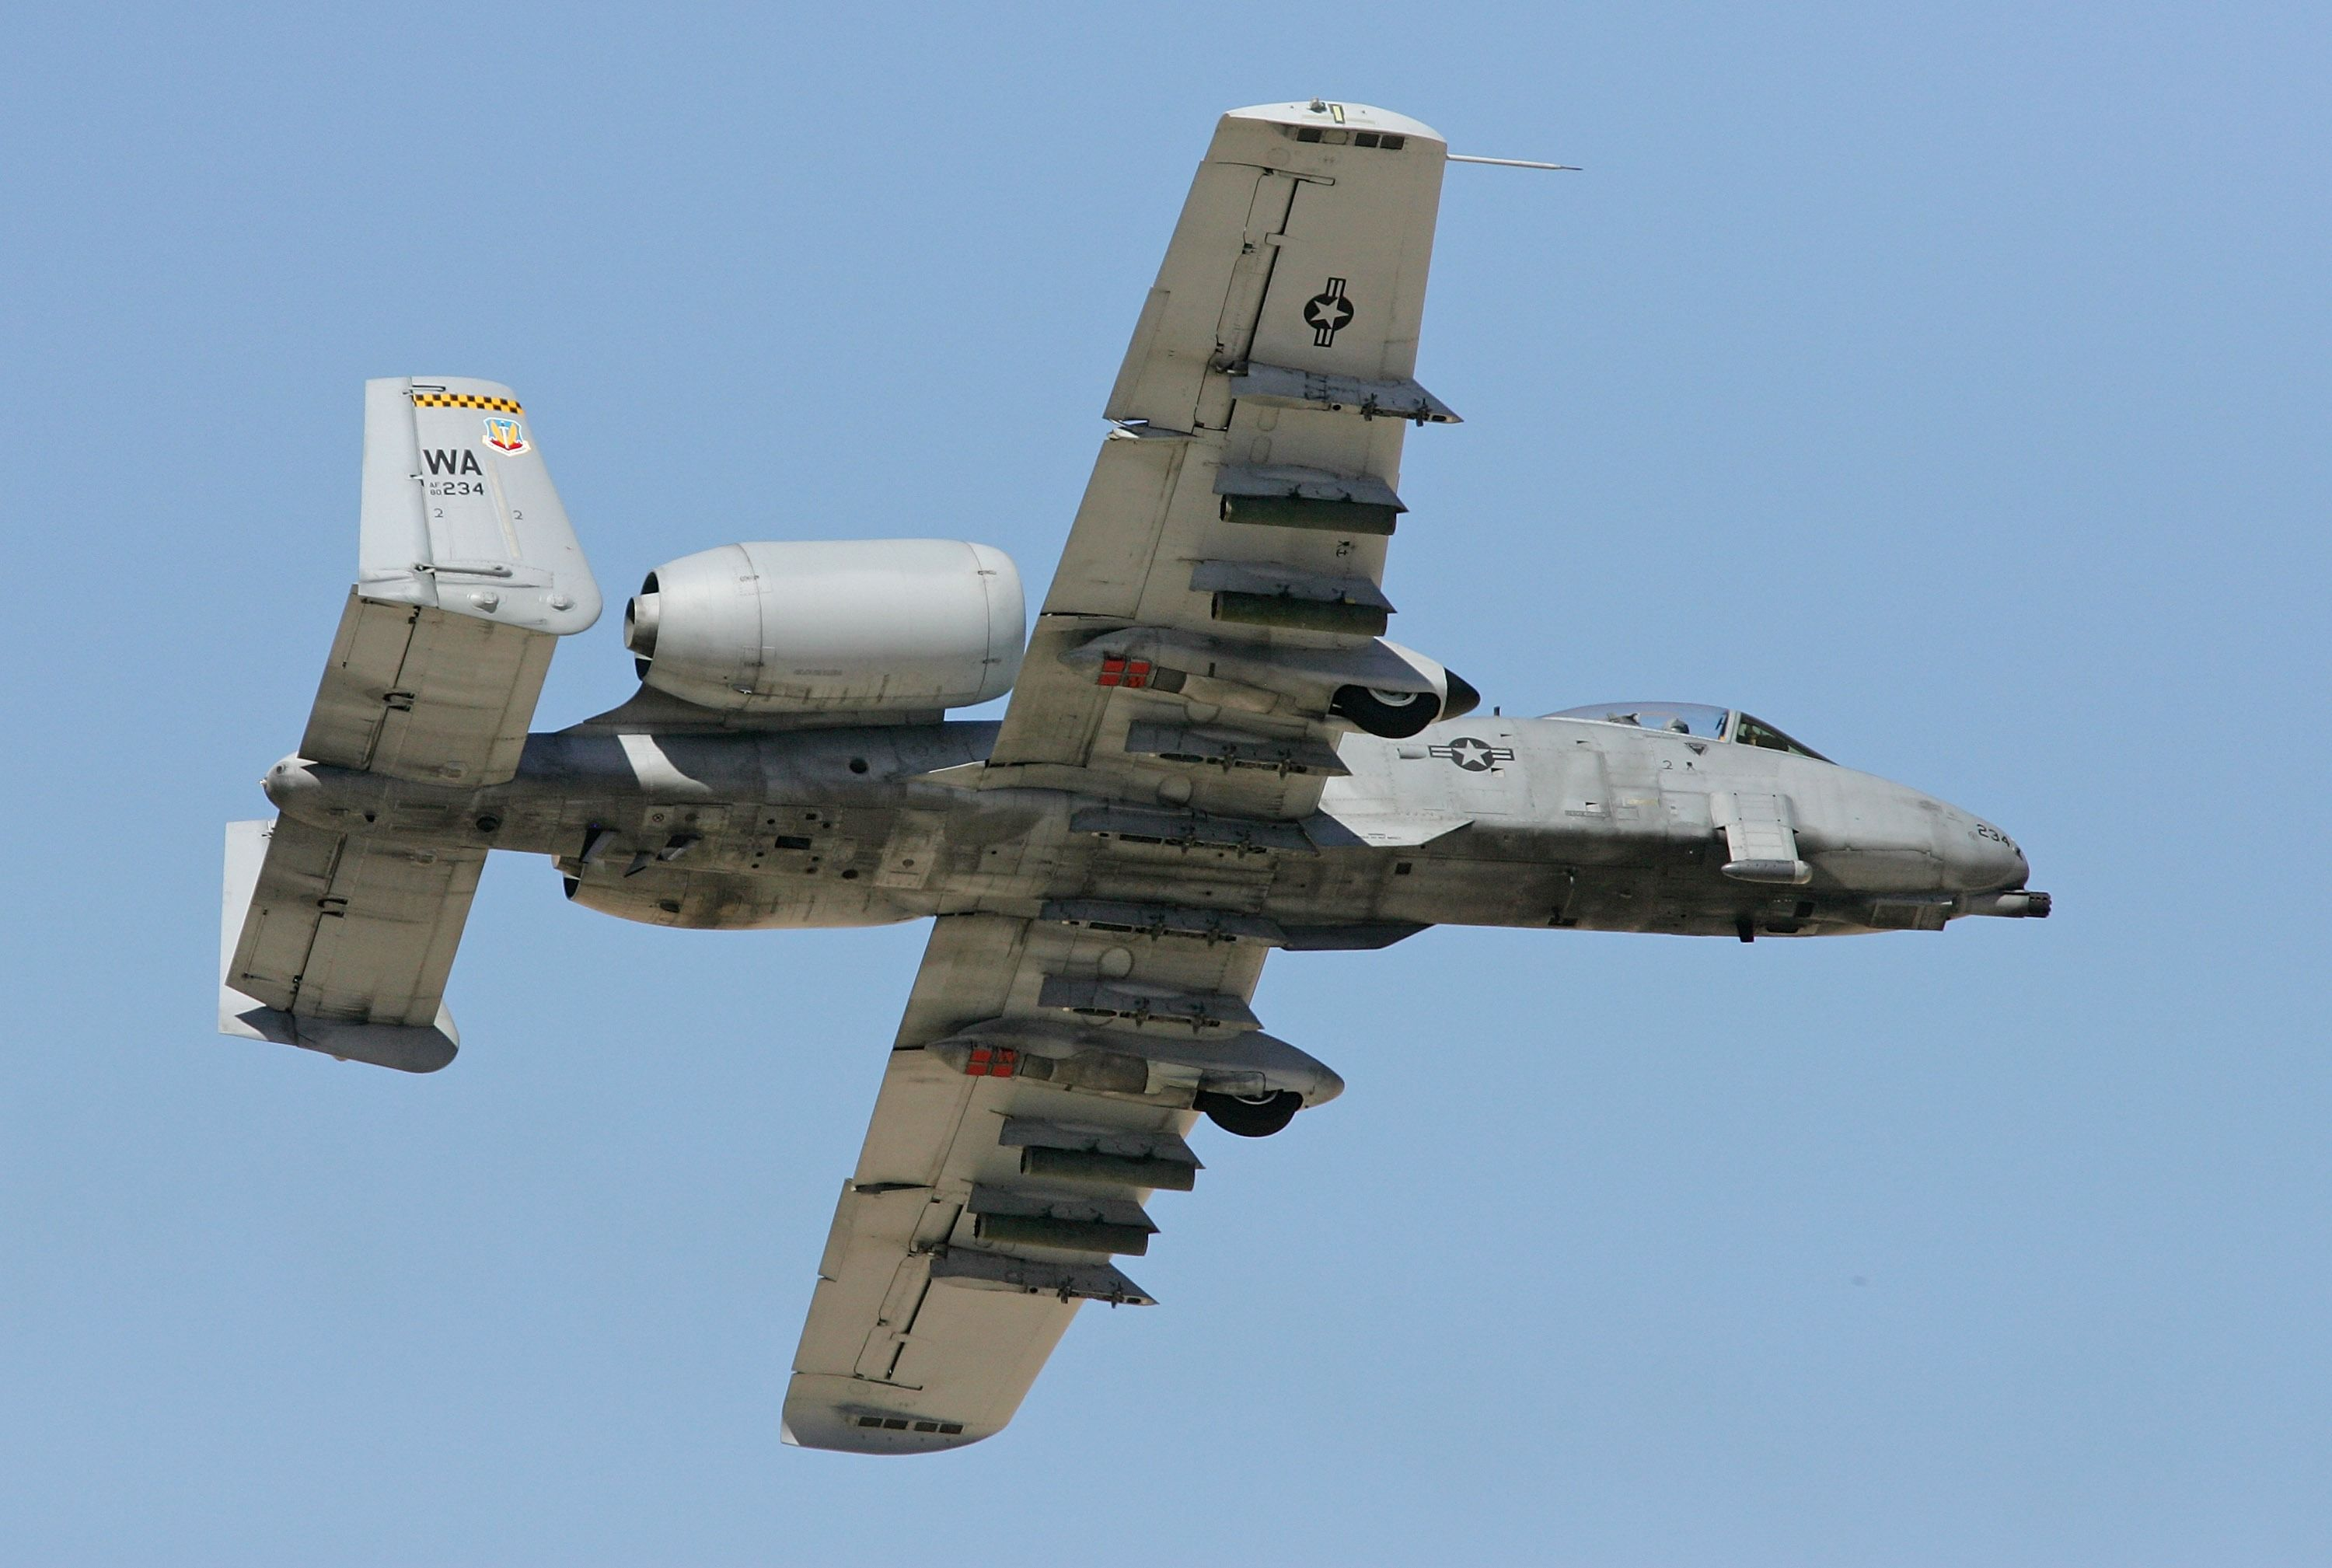 Oops! An A-10 Warthog Accidentally Fired a Rocket During a Training Flight